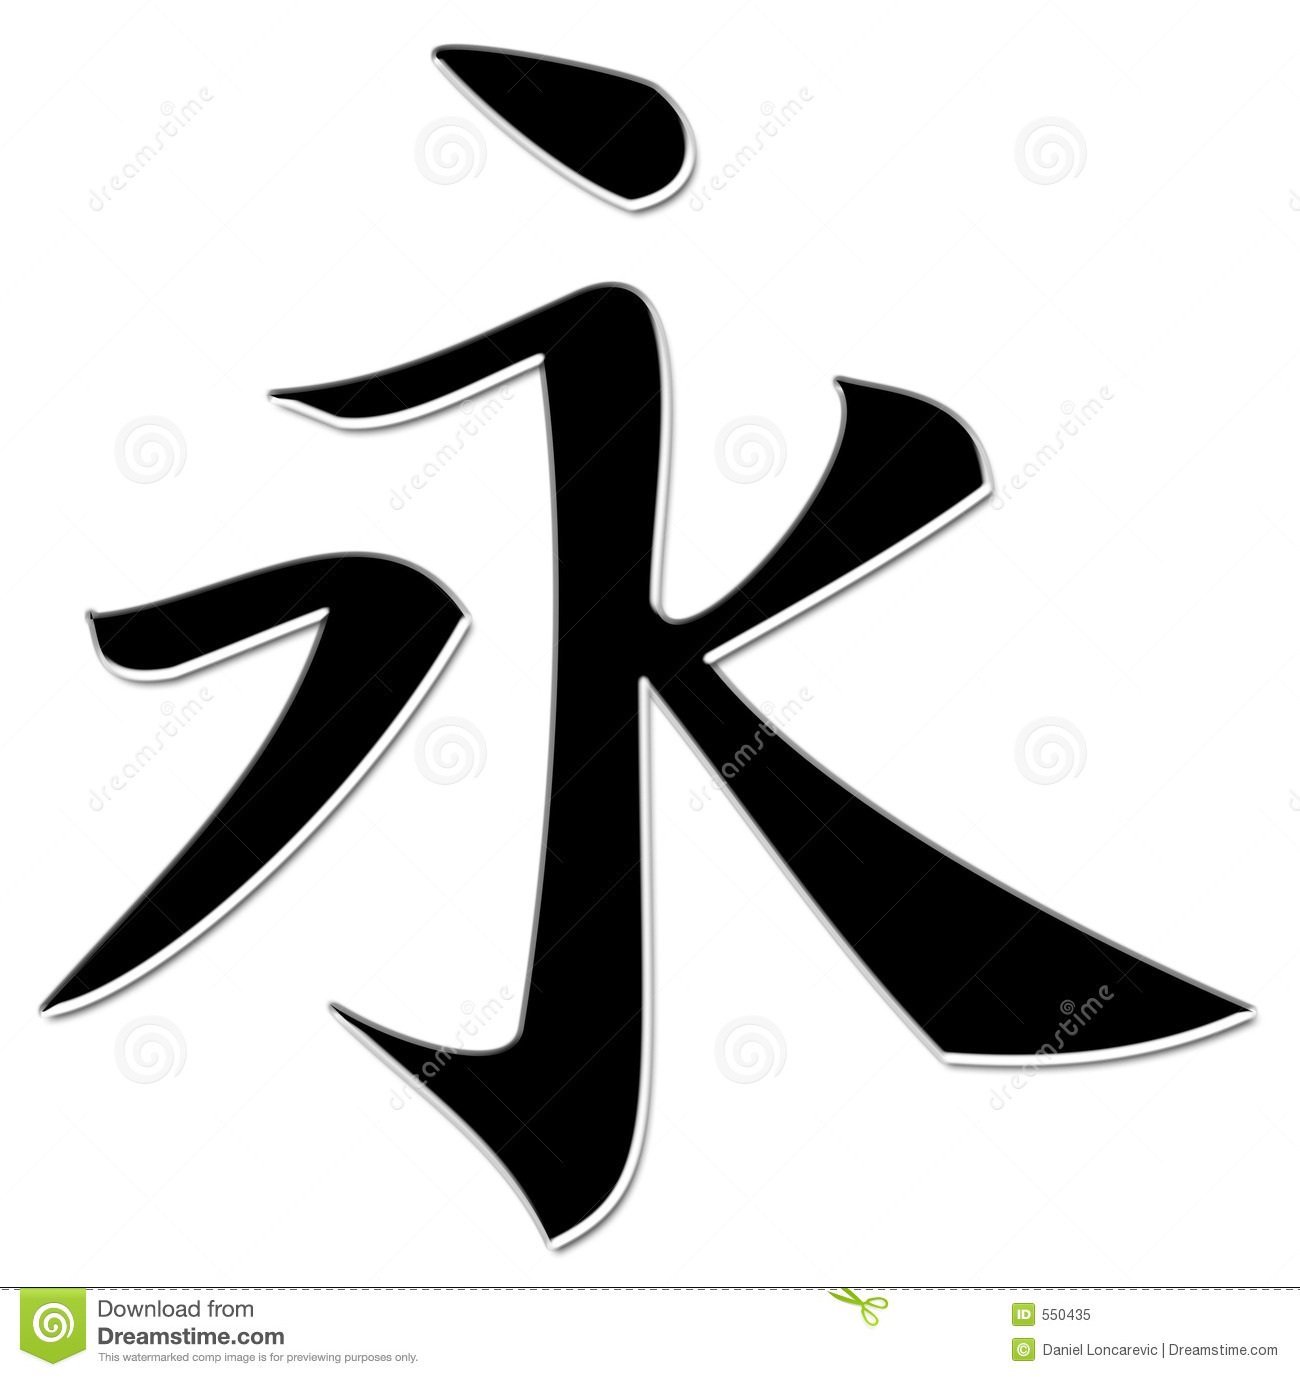 Symbol for eternal love gallery symbol and sign ideas japanese symbol for eternal love choice image symbol and sign ideas symbol eternal love chinese symbol biocorpaavc